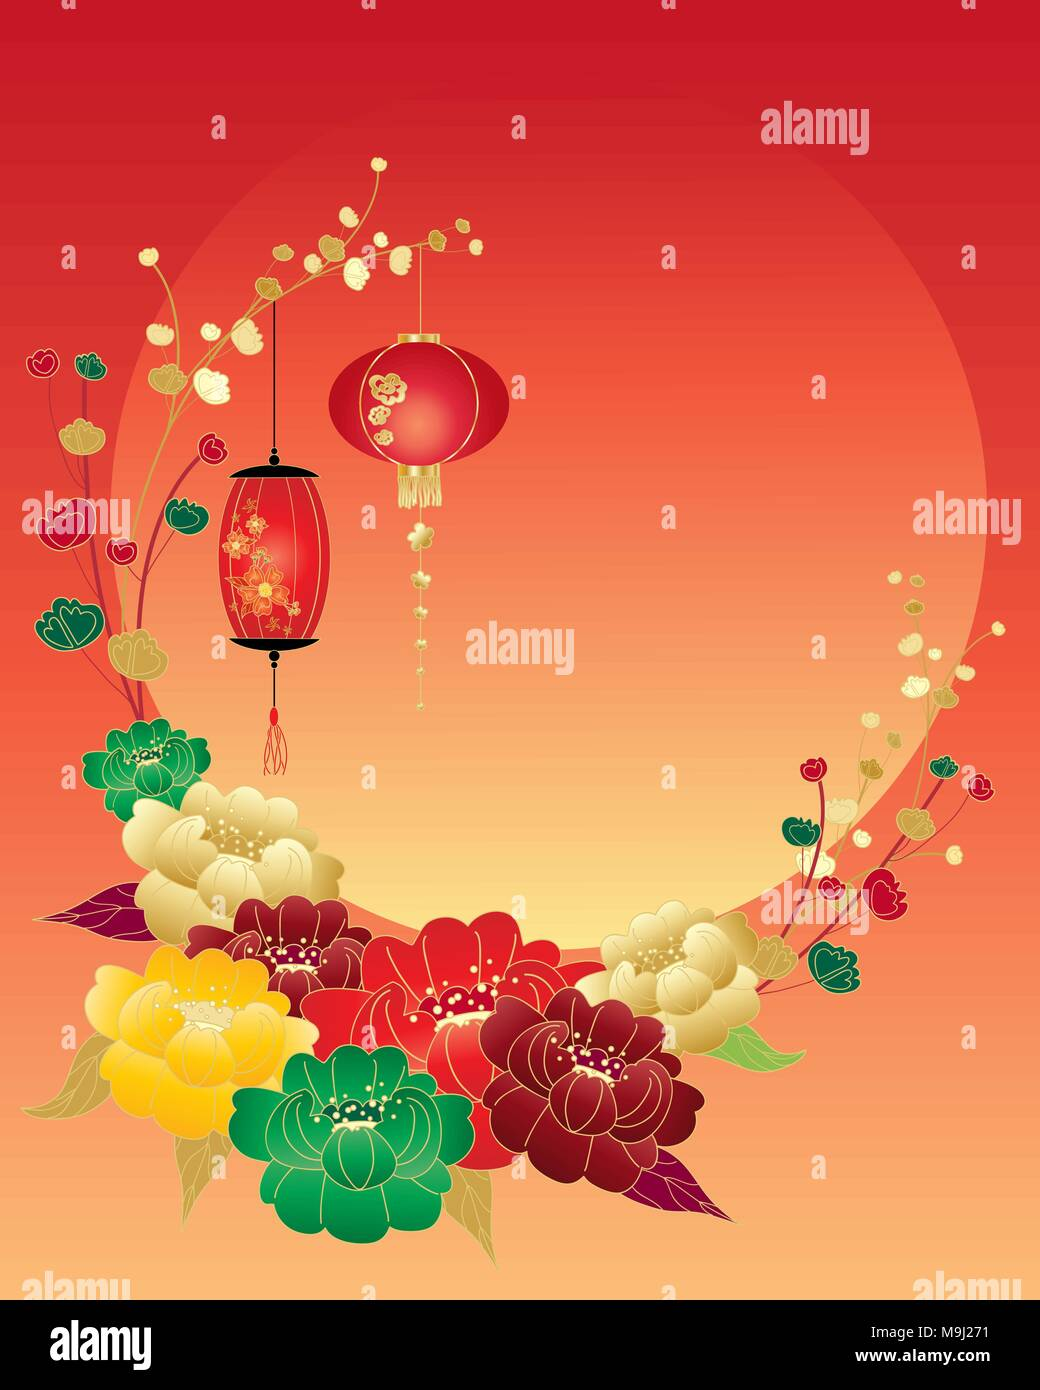 An illustration of a chinese new year greeting card with red green an illustration of a chinese new year greeting card with red green yellow and gold peony flowers and lanterns surrounding a big setting sun and space m4hsunfo